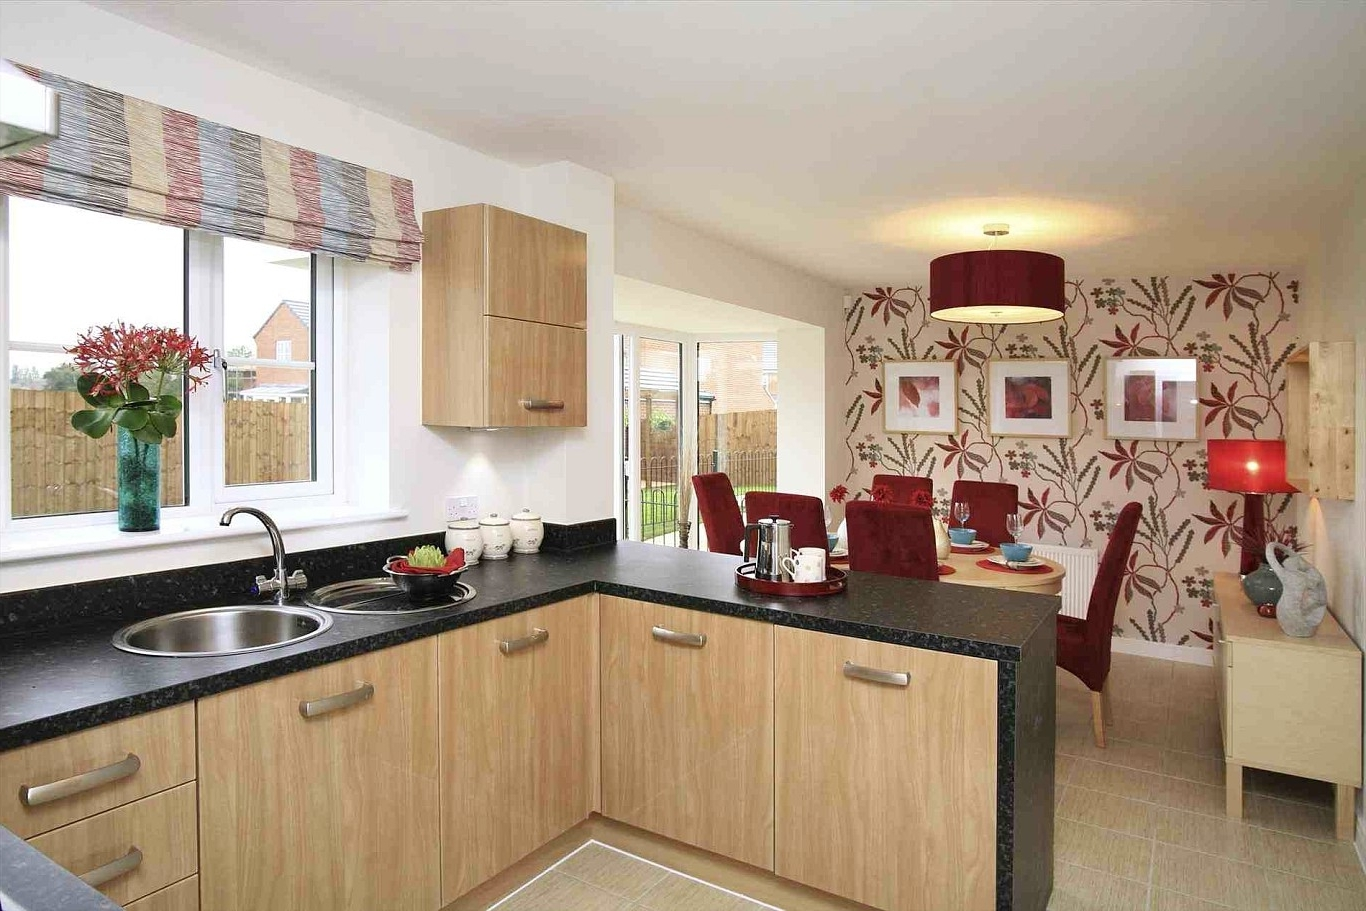 Most Recently Released Sofas For Kitchen Diner Inside Kitchen Diner Sofa Ideas Narrow Kitchen Diner Ideas Small Kitchen (View 5 of 15)